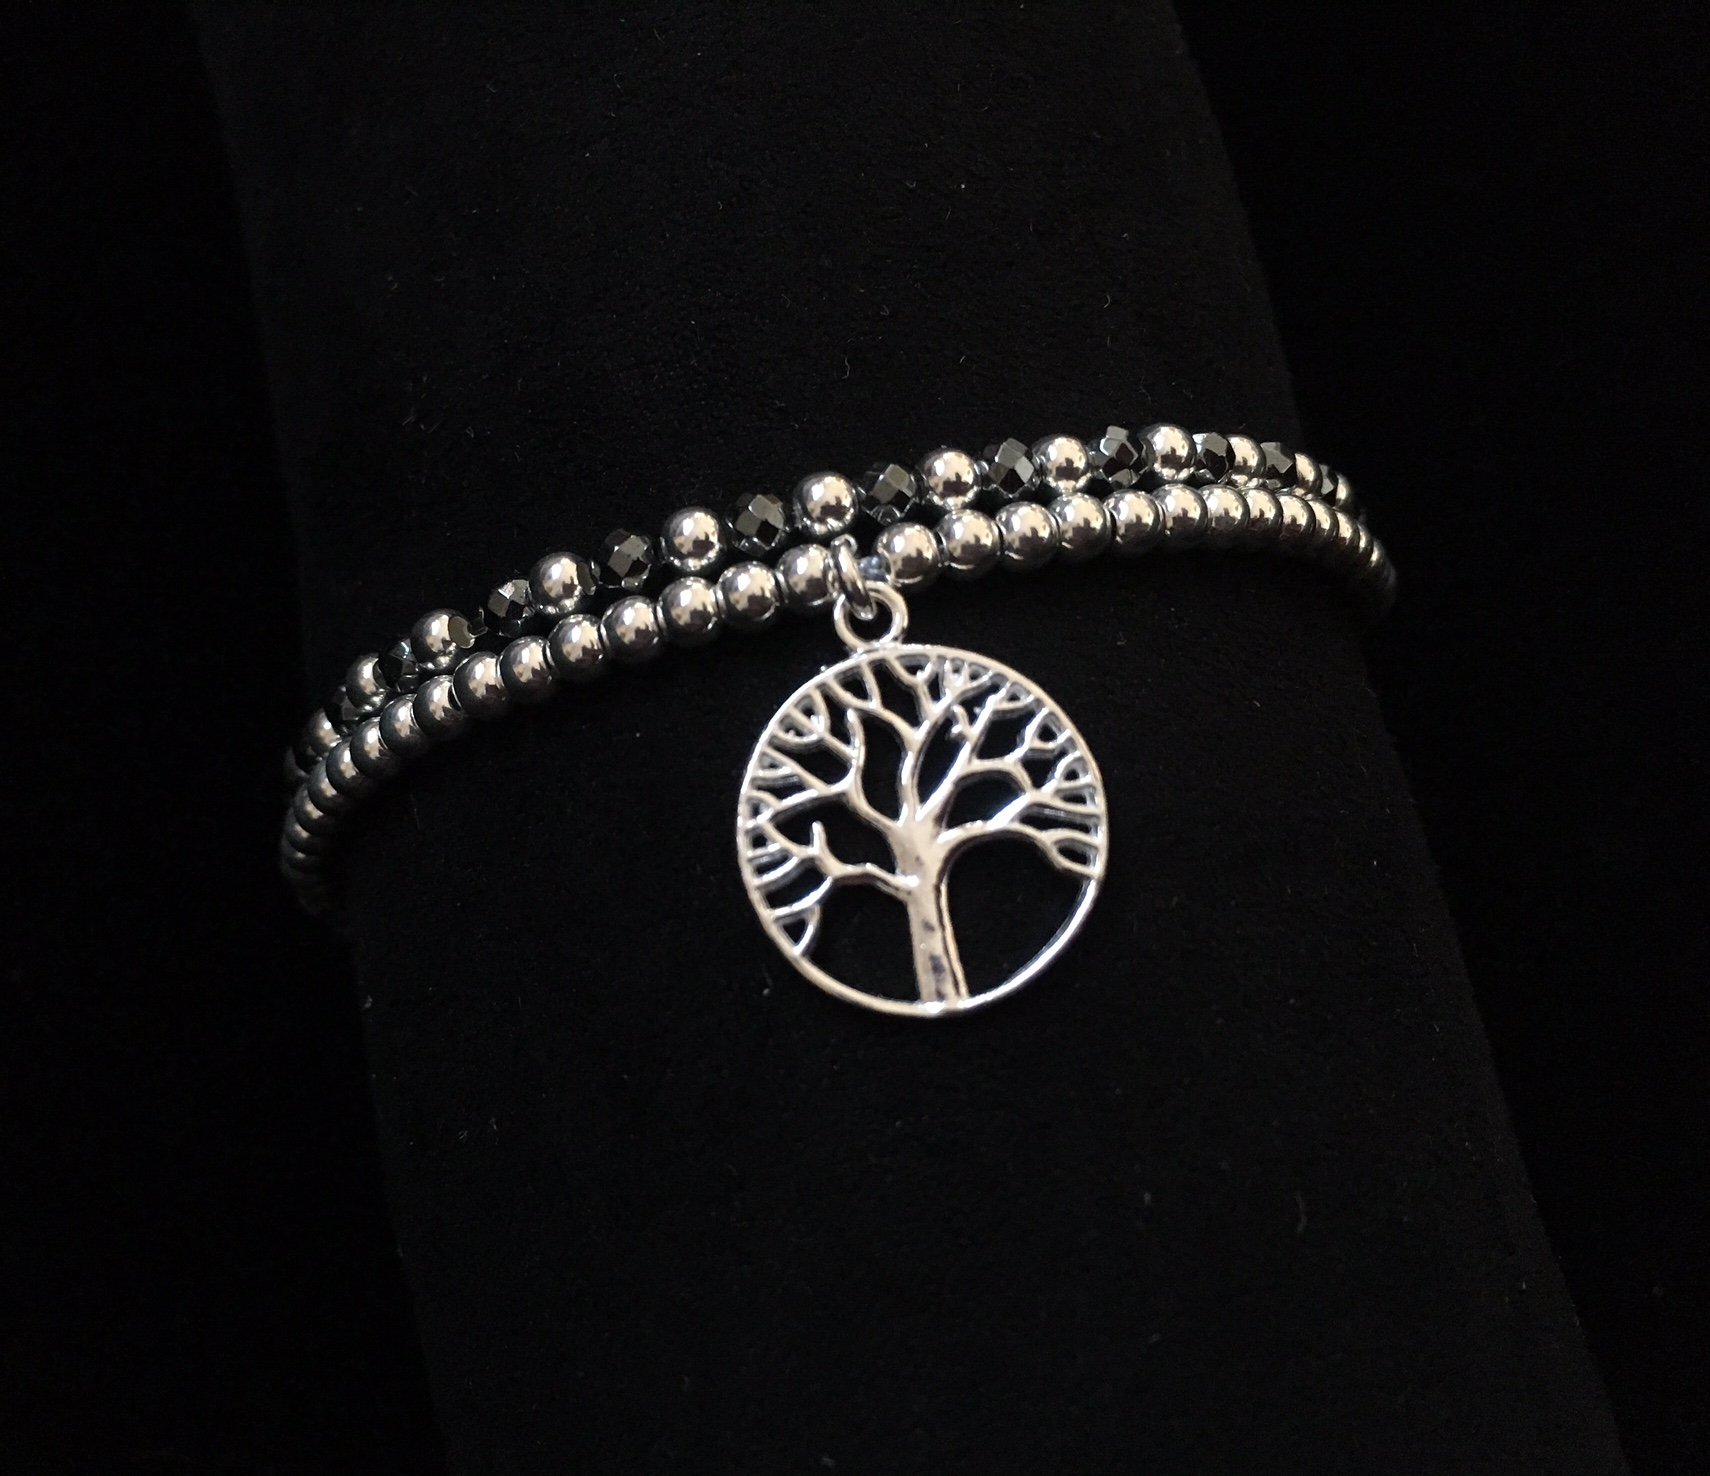 'Tree of Life' with Hematite stones